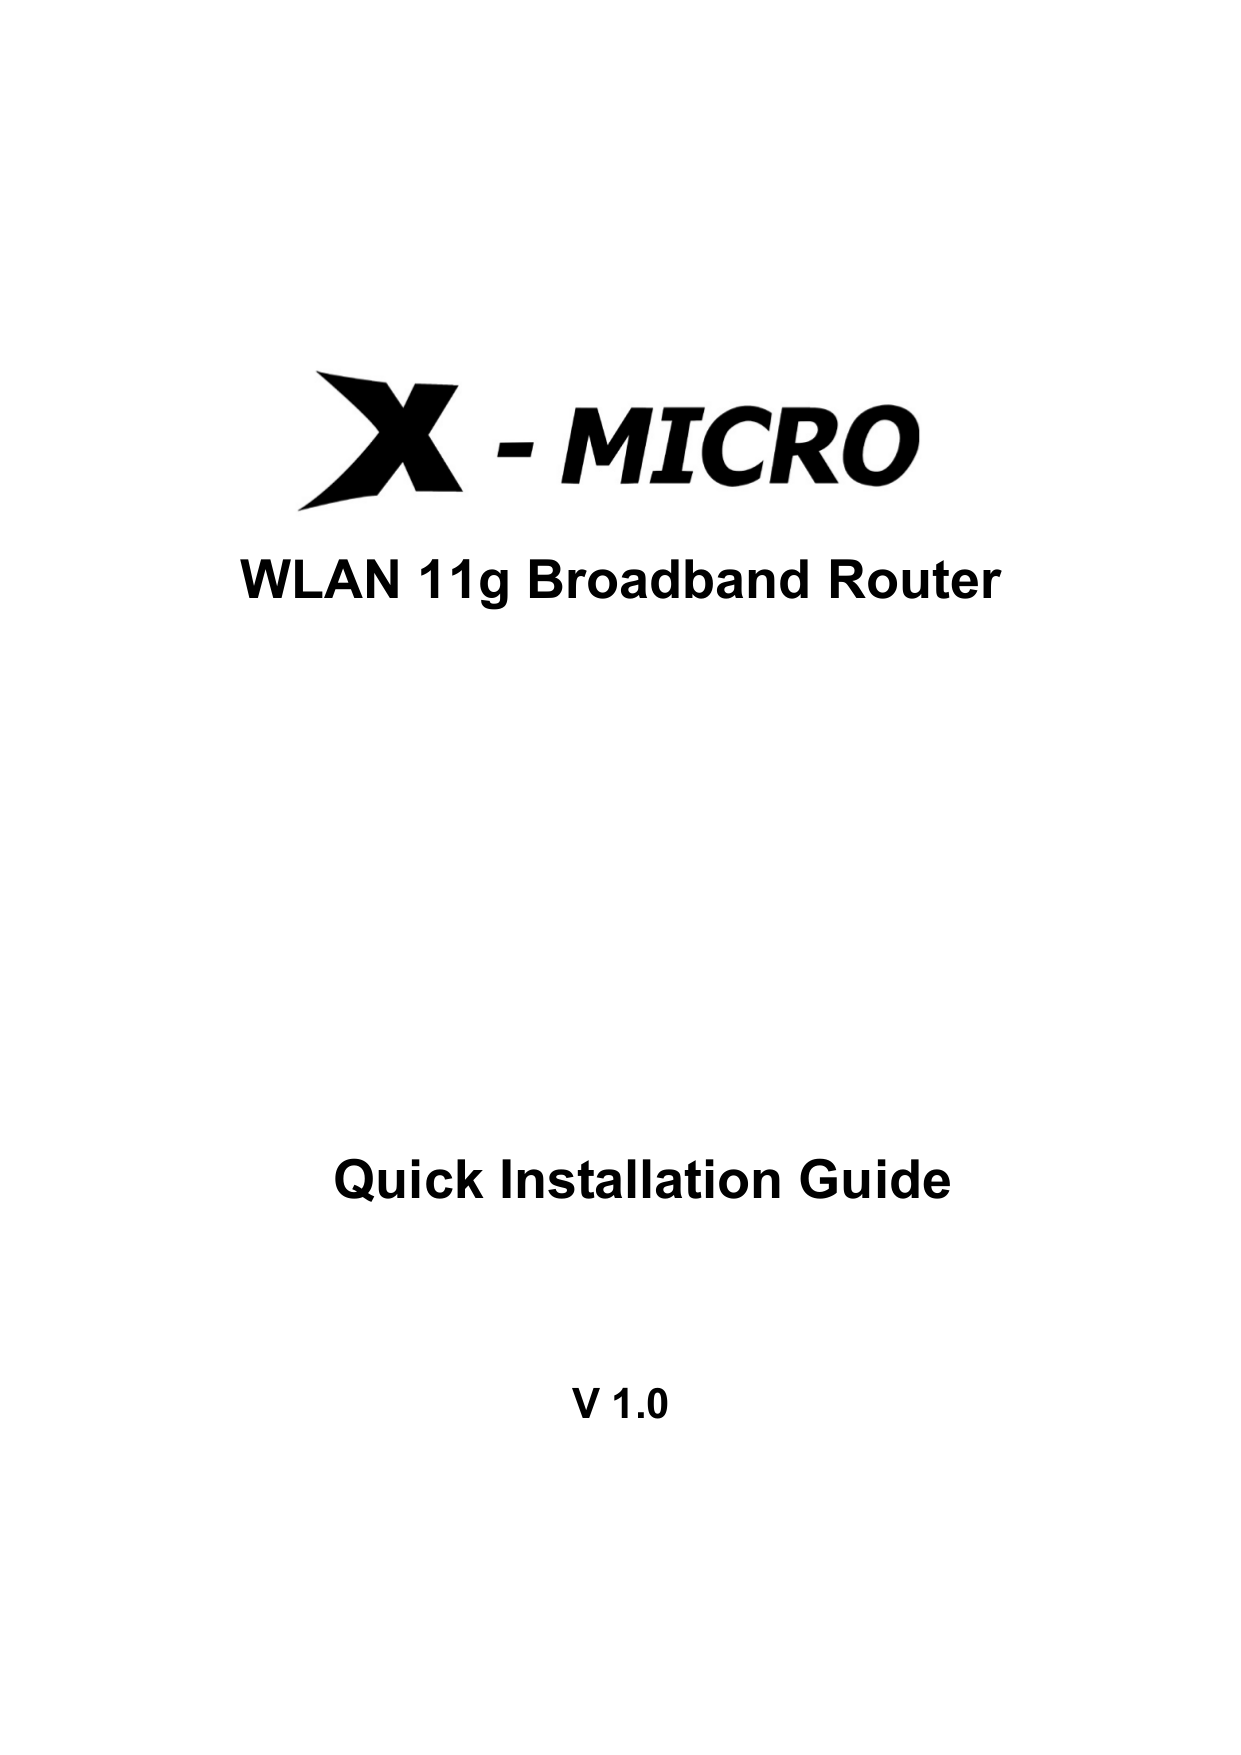 pdf for X-Micro Router XWL-11GRTX manual